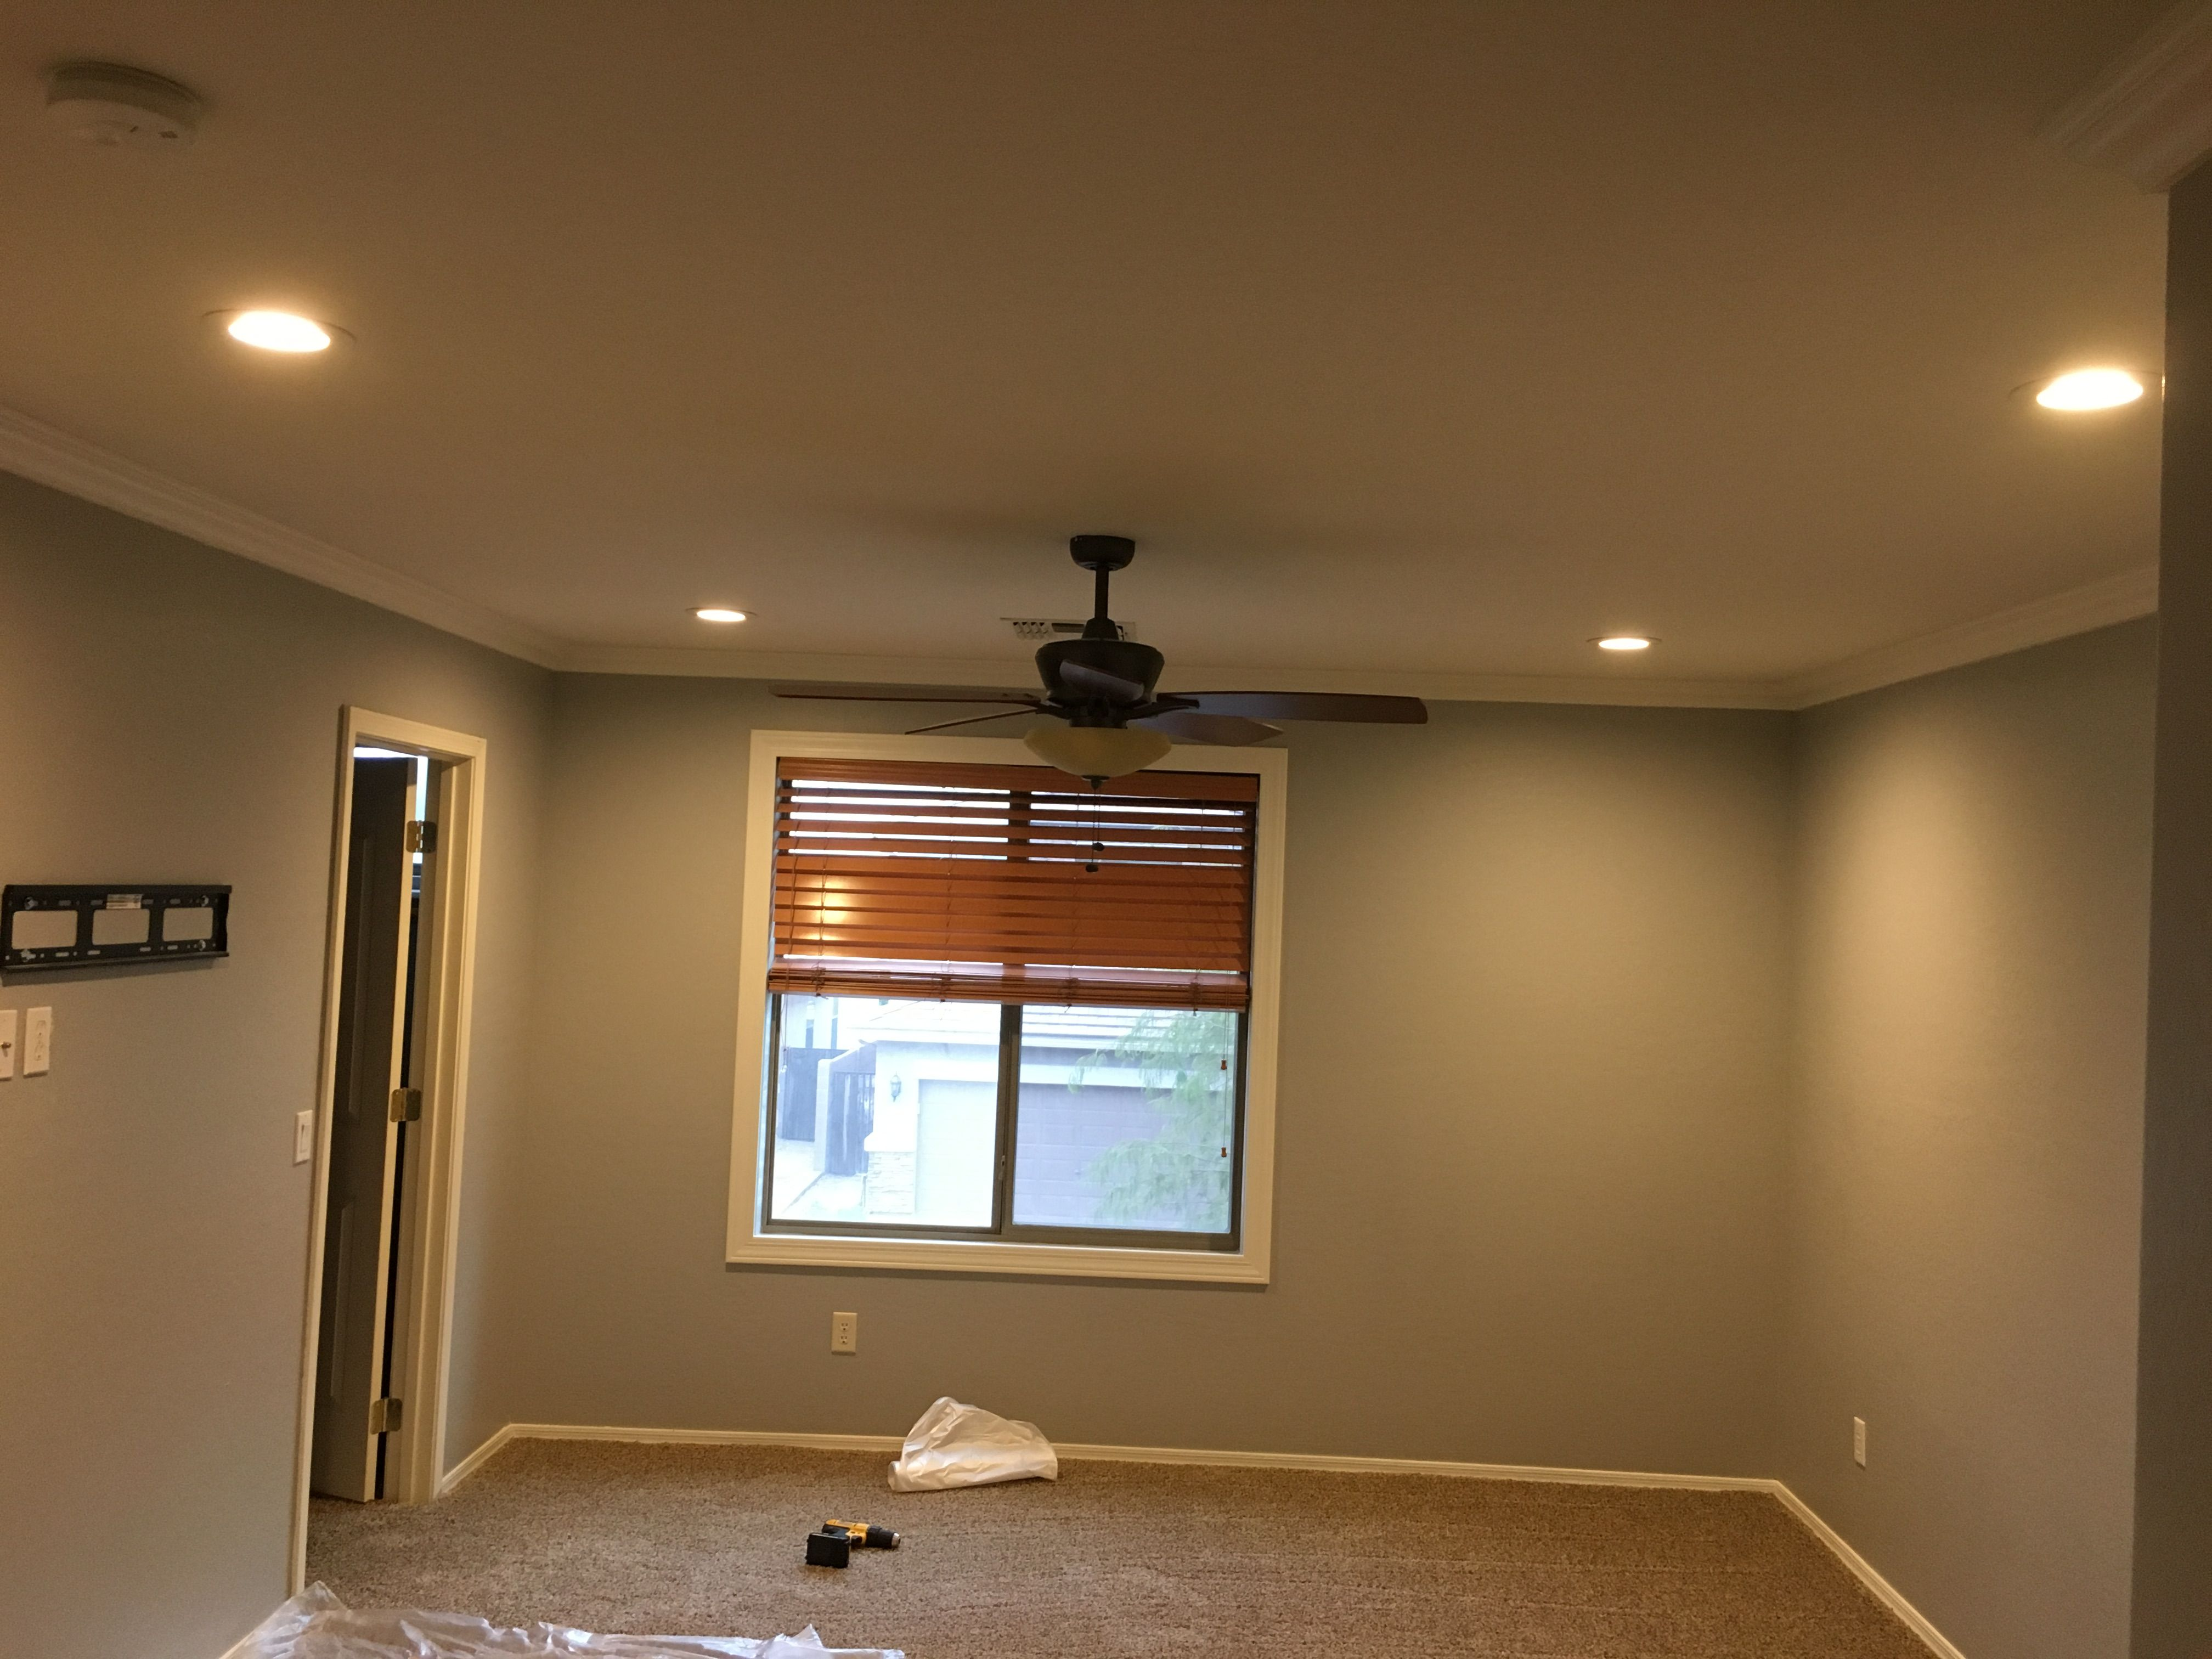 4 6 Inch 2700k Led S Installed Installed Tv Outlet And Cable For Wall Mounted Tv Frame Recessed Lighting Living Room Recessed Lighting Trim Recessed Lighting